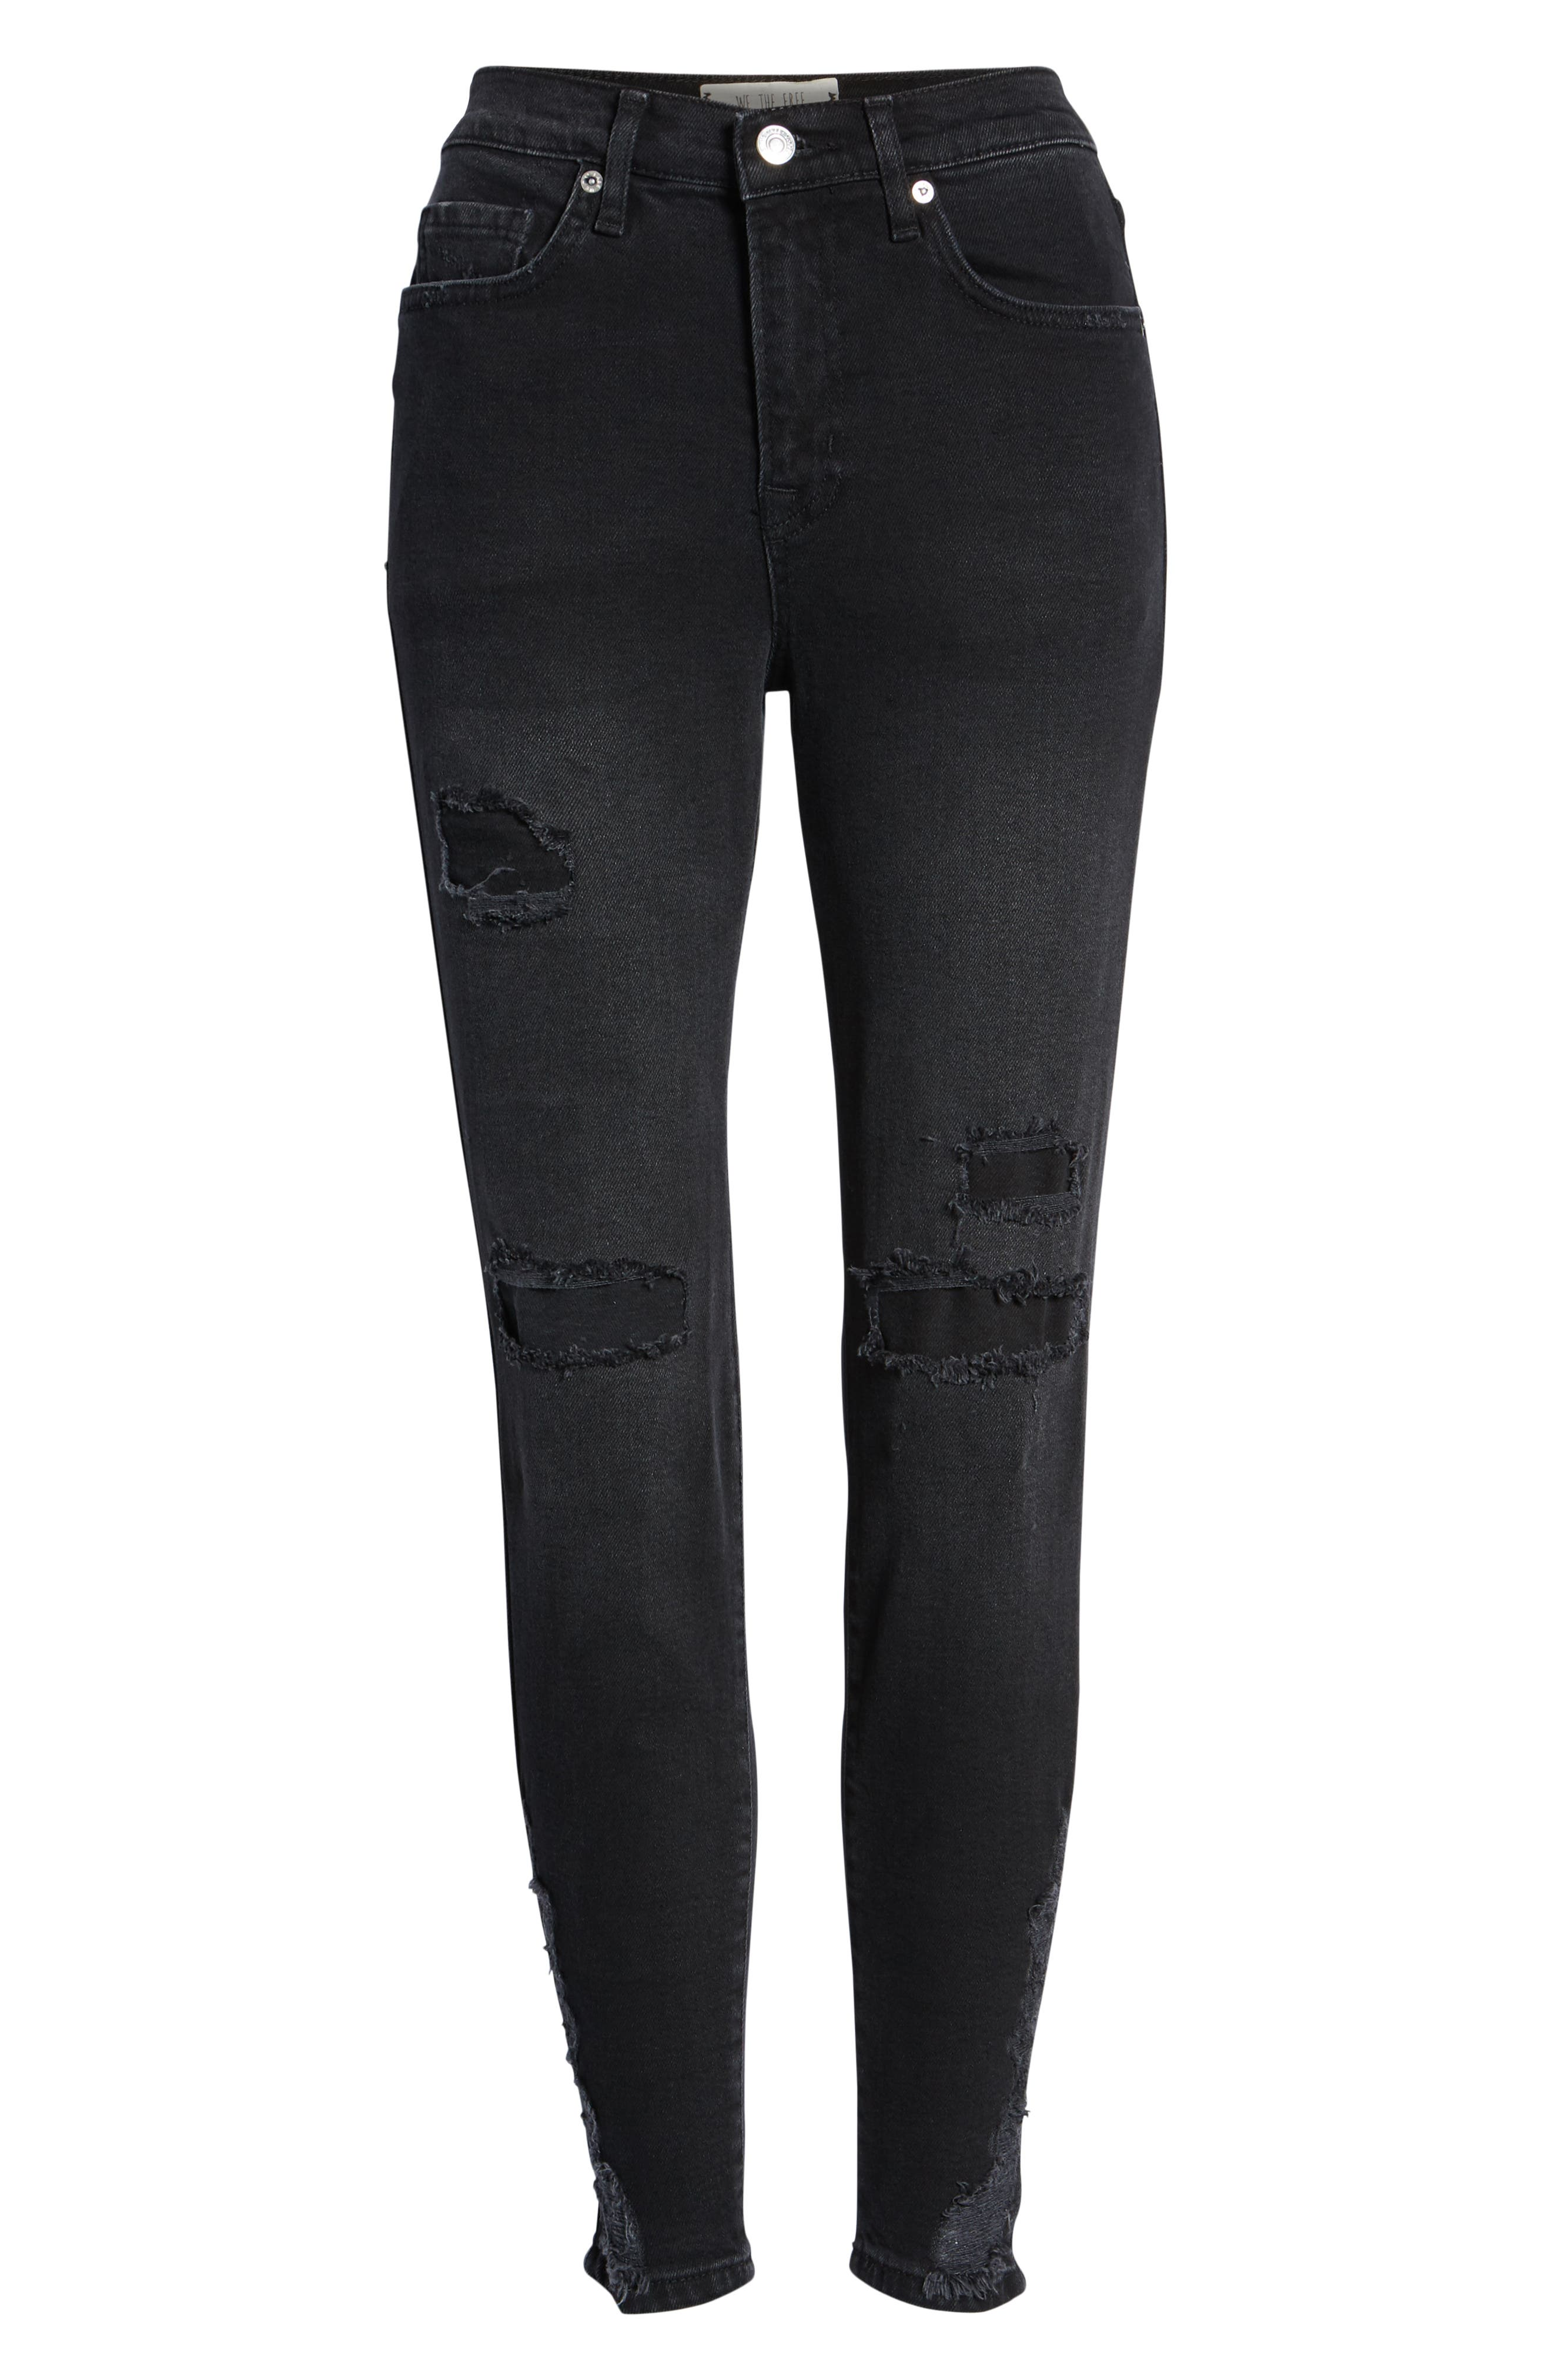 About a Girl Ripped High Waist Crop Skinny Jeans,                             Alternate thumbnail 7, color,                             BLACK